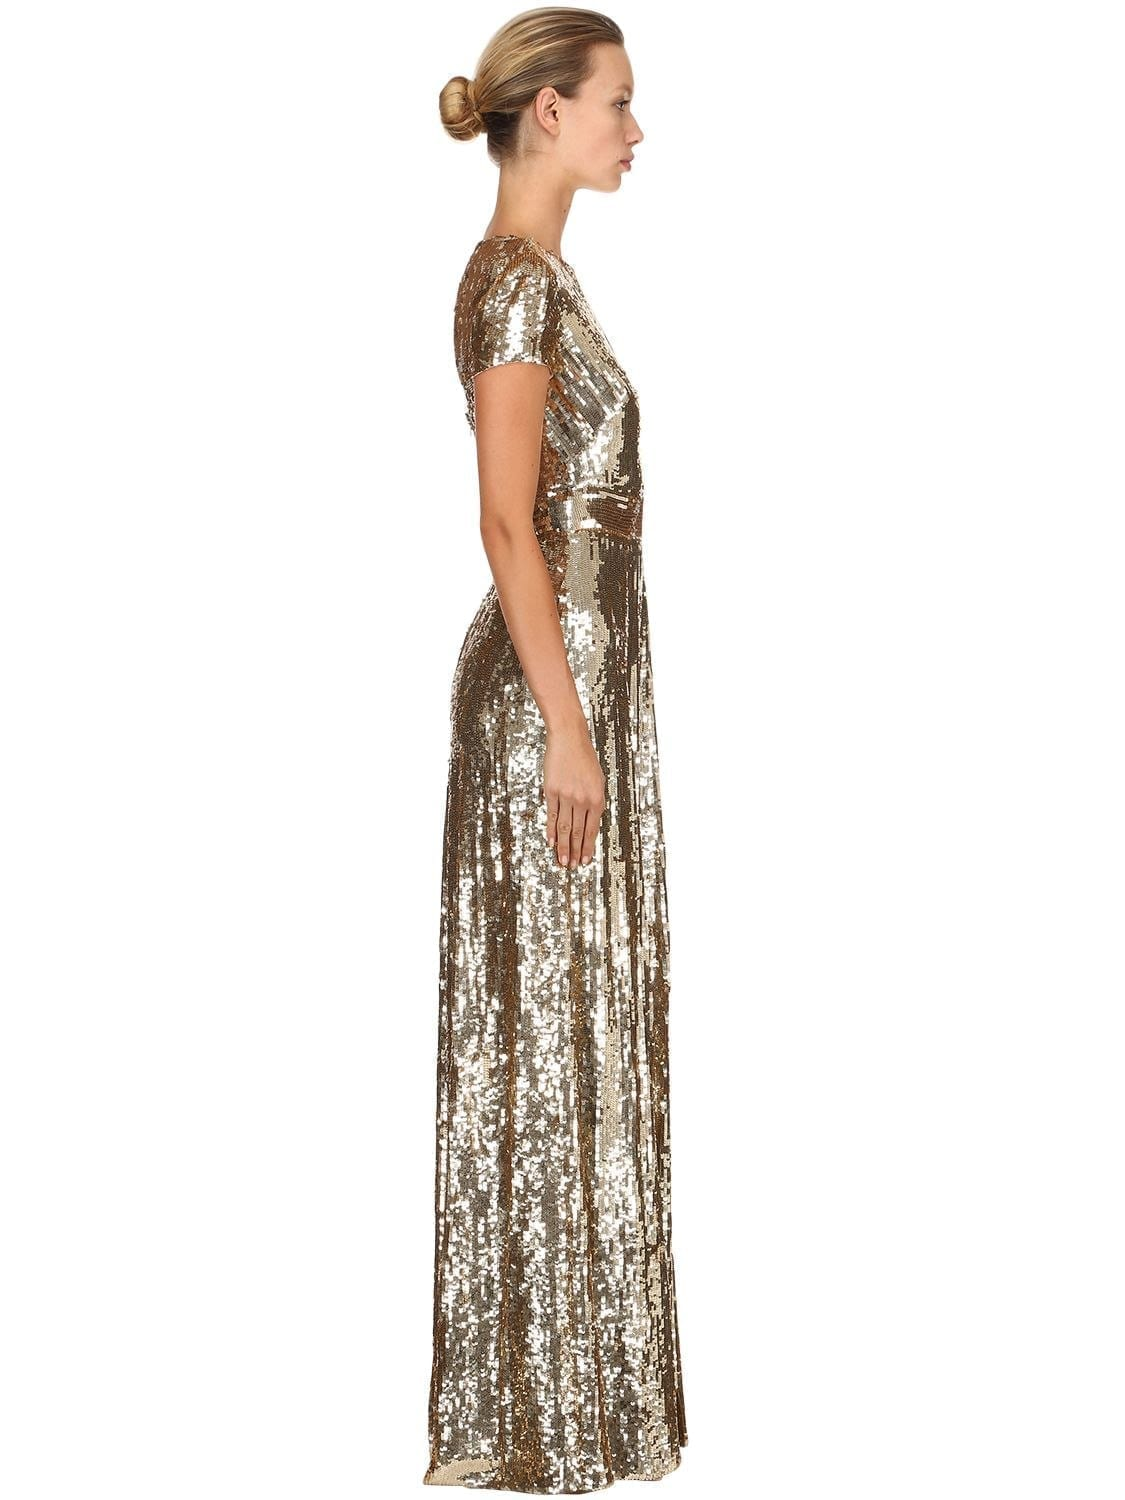 TEMPERLEY LONDON Back Cutout Sequined Long Gold Dress - We Select ...